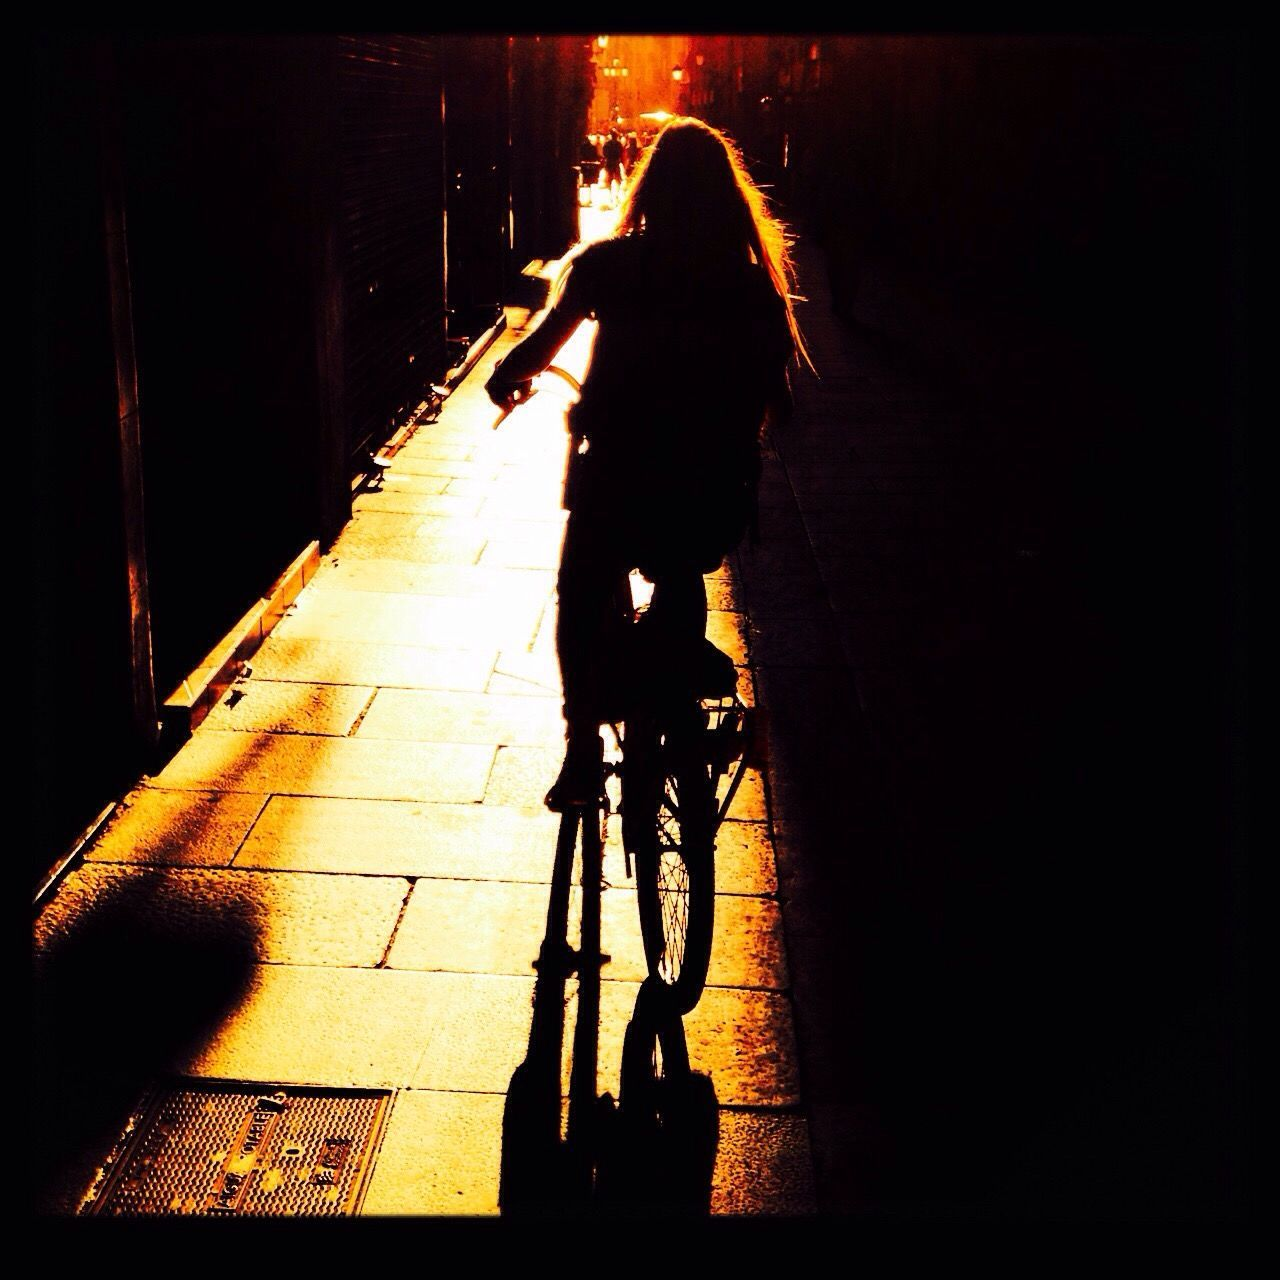 bicycle, real people, transportation, full length, one person, cycling, riding, mode of transport, sunlight, lifestyles, land vehicle, rear view, leisure activity, shadow, women, outdoors, day, men, wheelchair, people